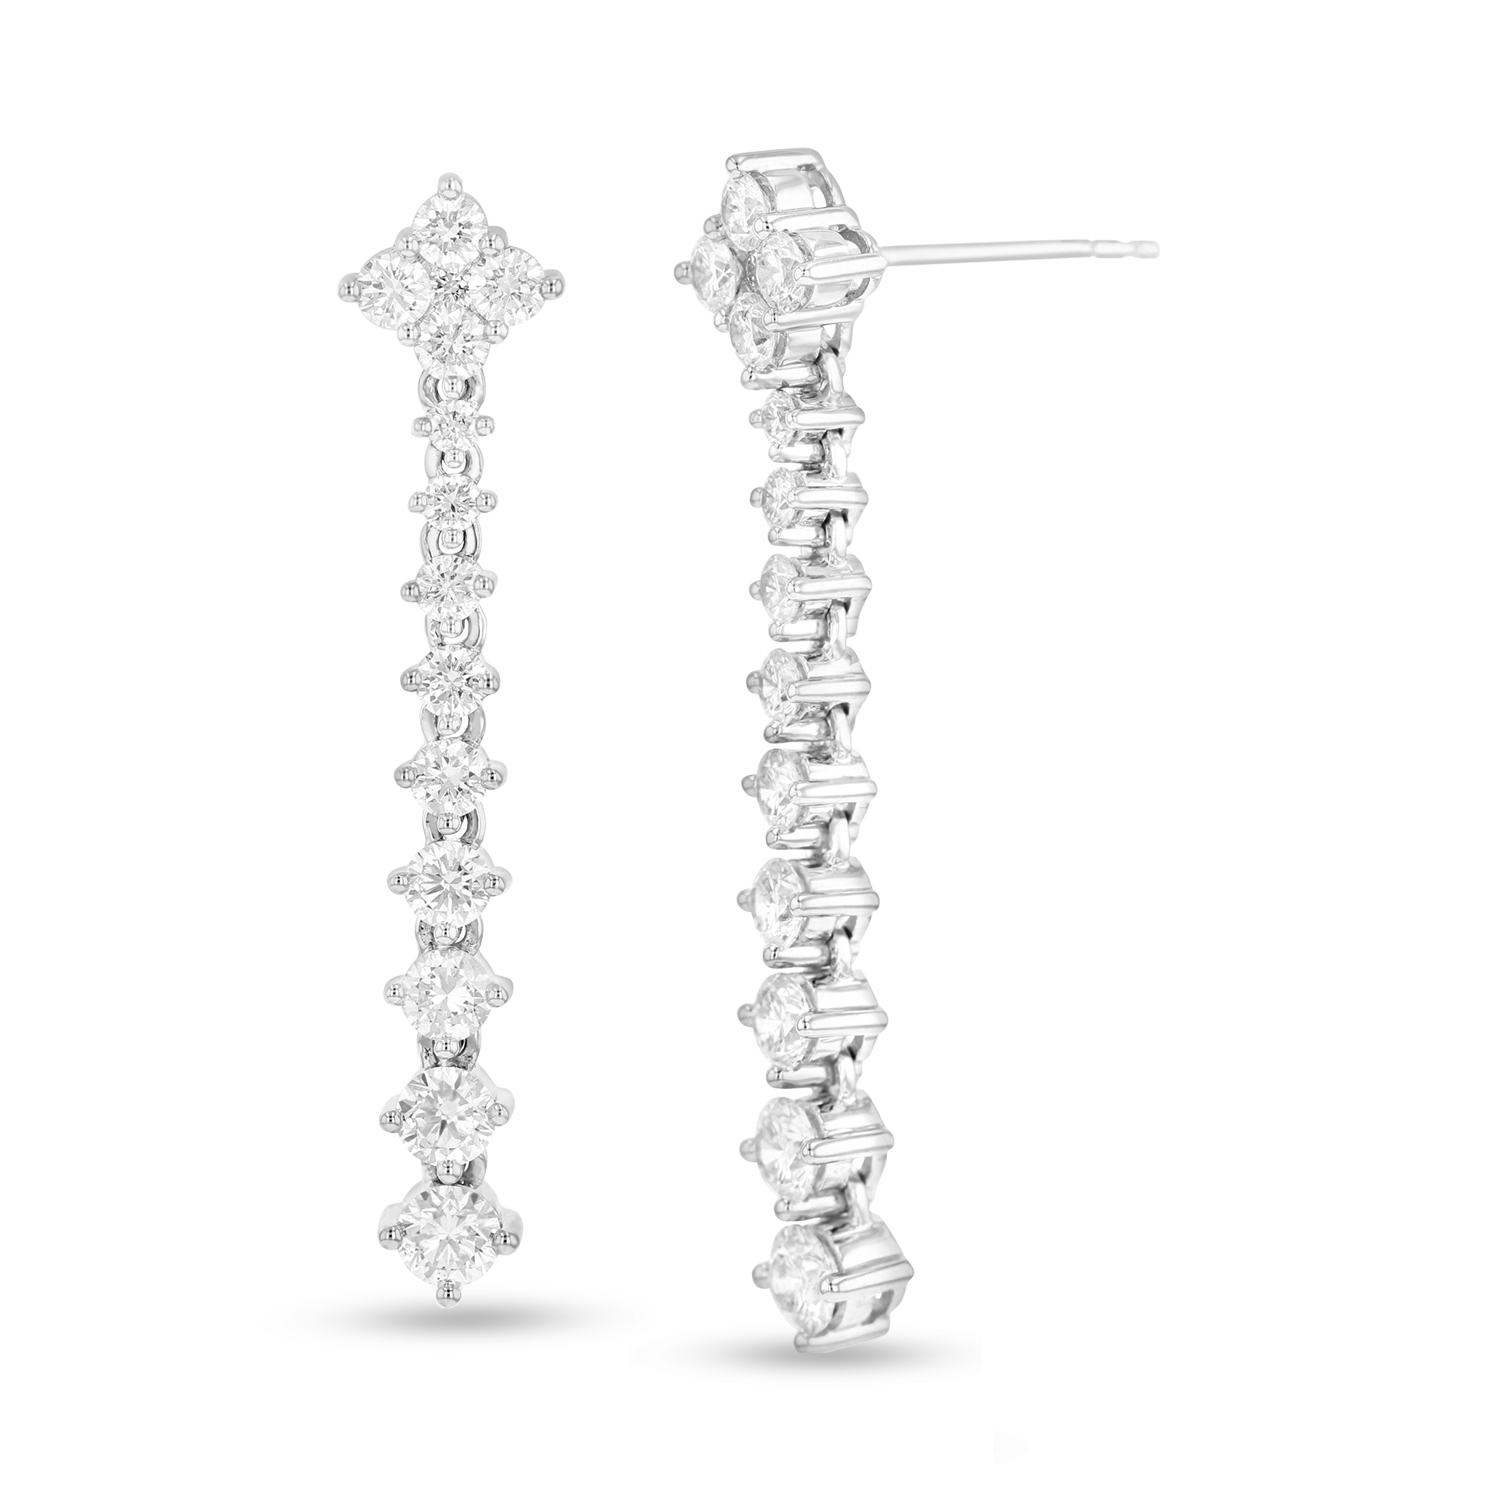 View 1.94ctw Diamonds Fashion Dangling Earrings in 18kWG